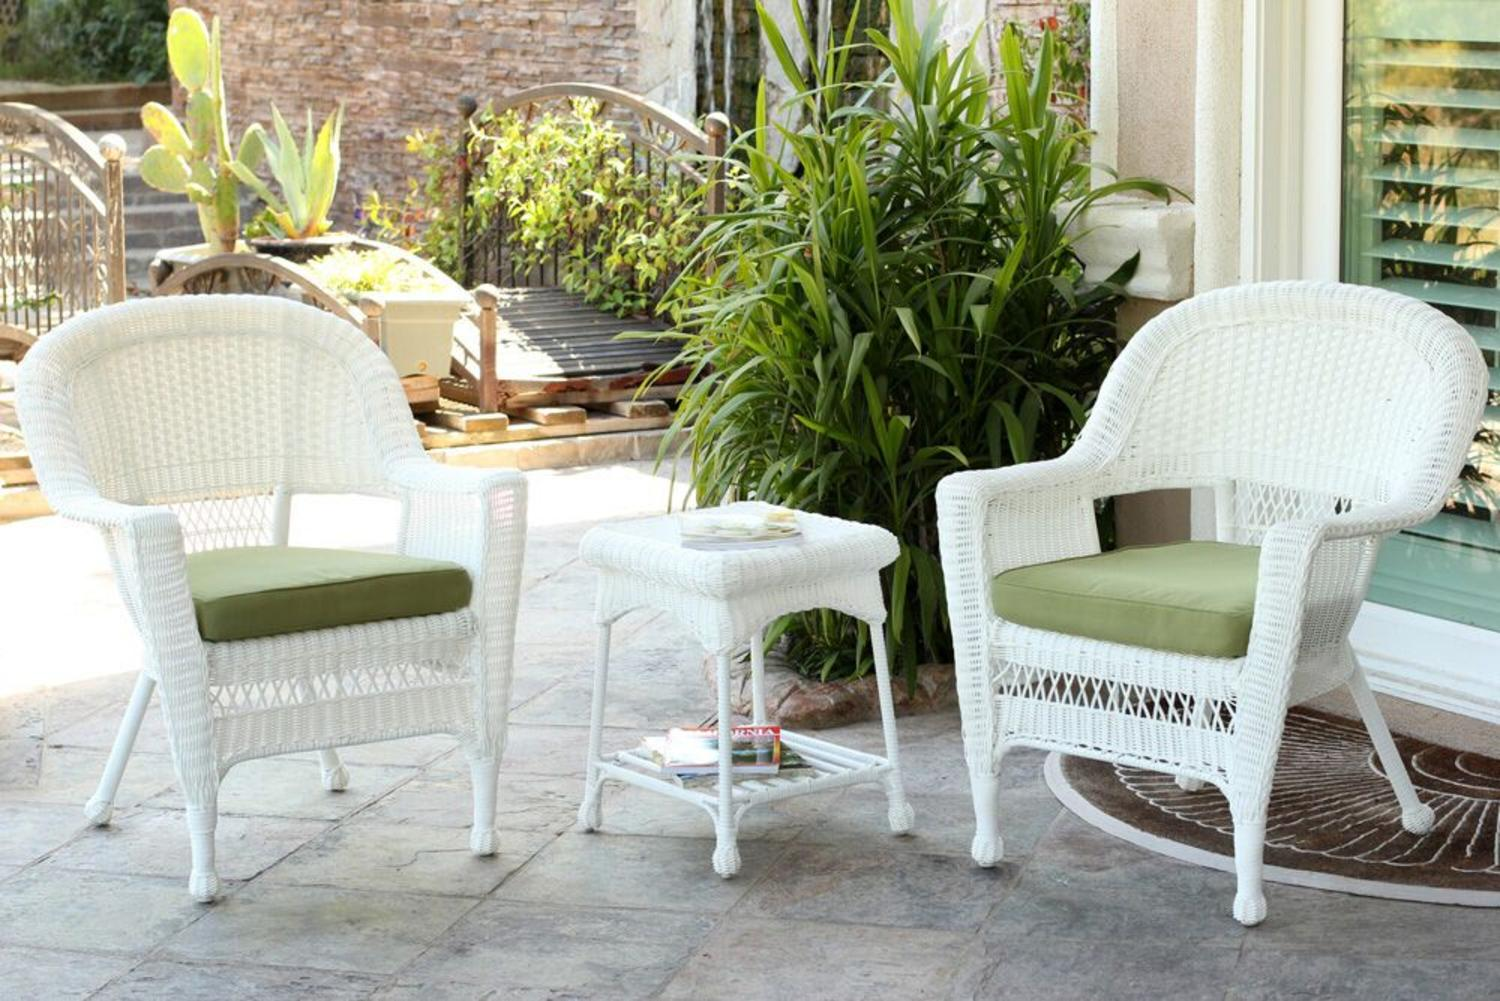 3 Piece White Resin Wicker Patio Chairs And End Table Furniture Set   Green  Cushions